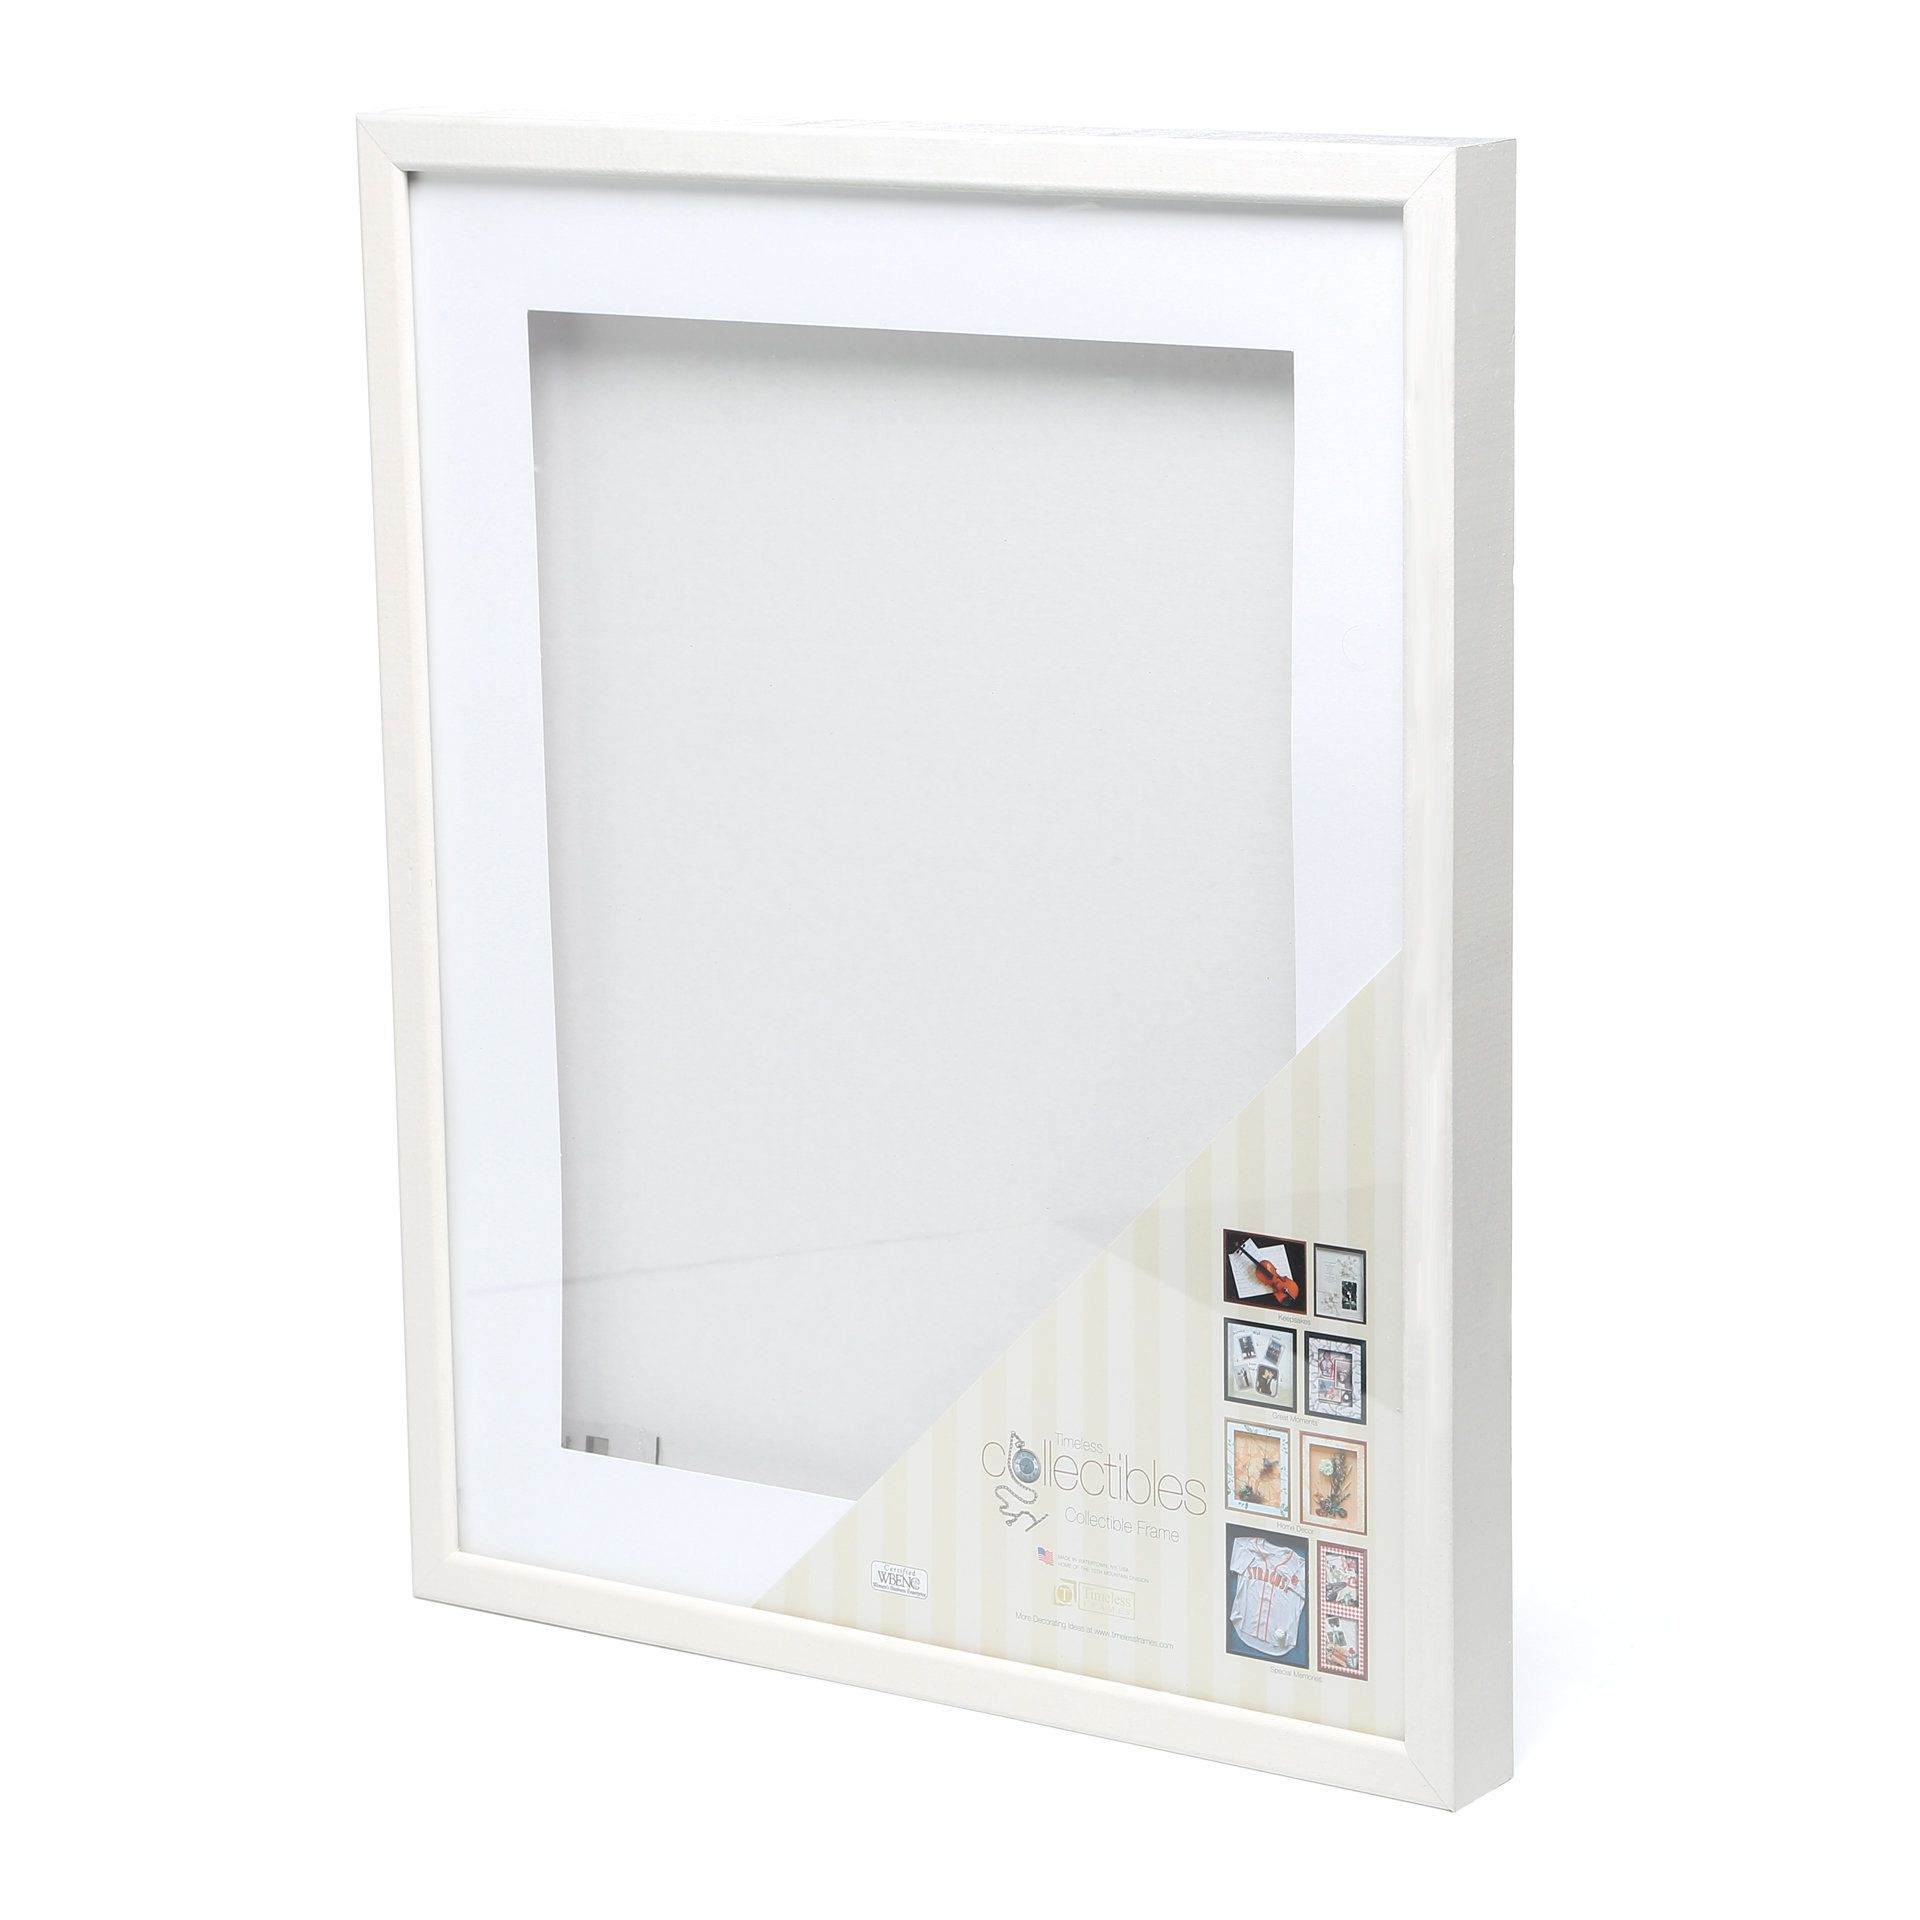 Maryjo shadow box picture frame products pinterest shadow maryjo shadow box picture frame jeuxipadfo Image collections